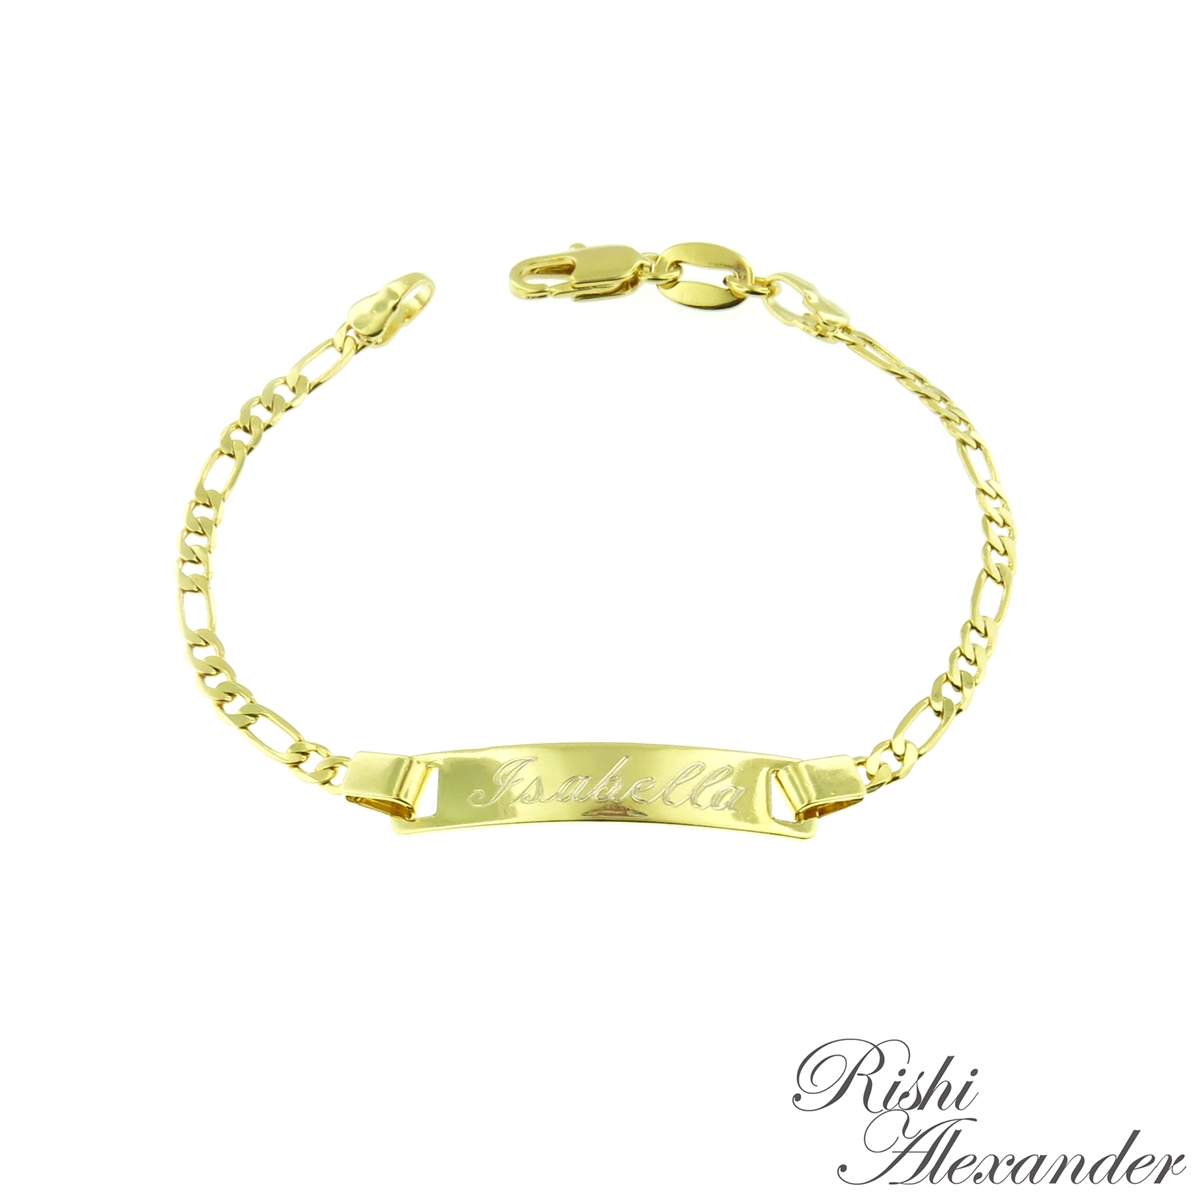 fit wid jewelry bracelet id caer in ed m t medium fmt tiffany gold constrain hei co wire bracelets